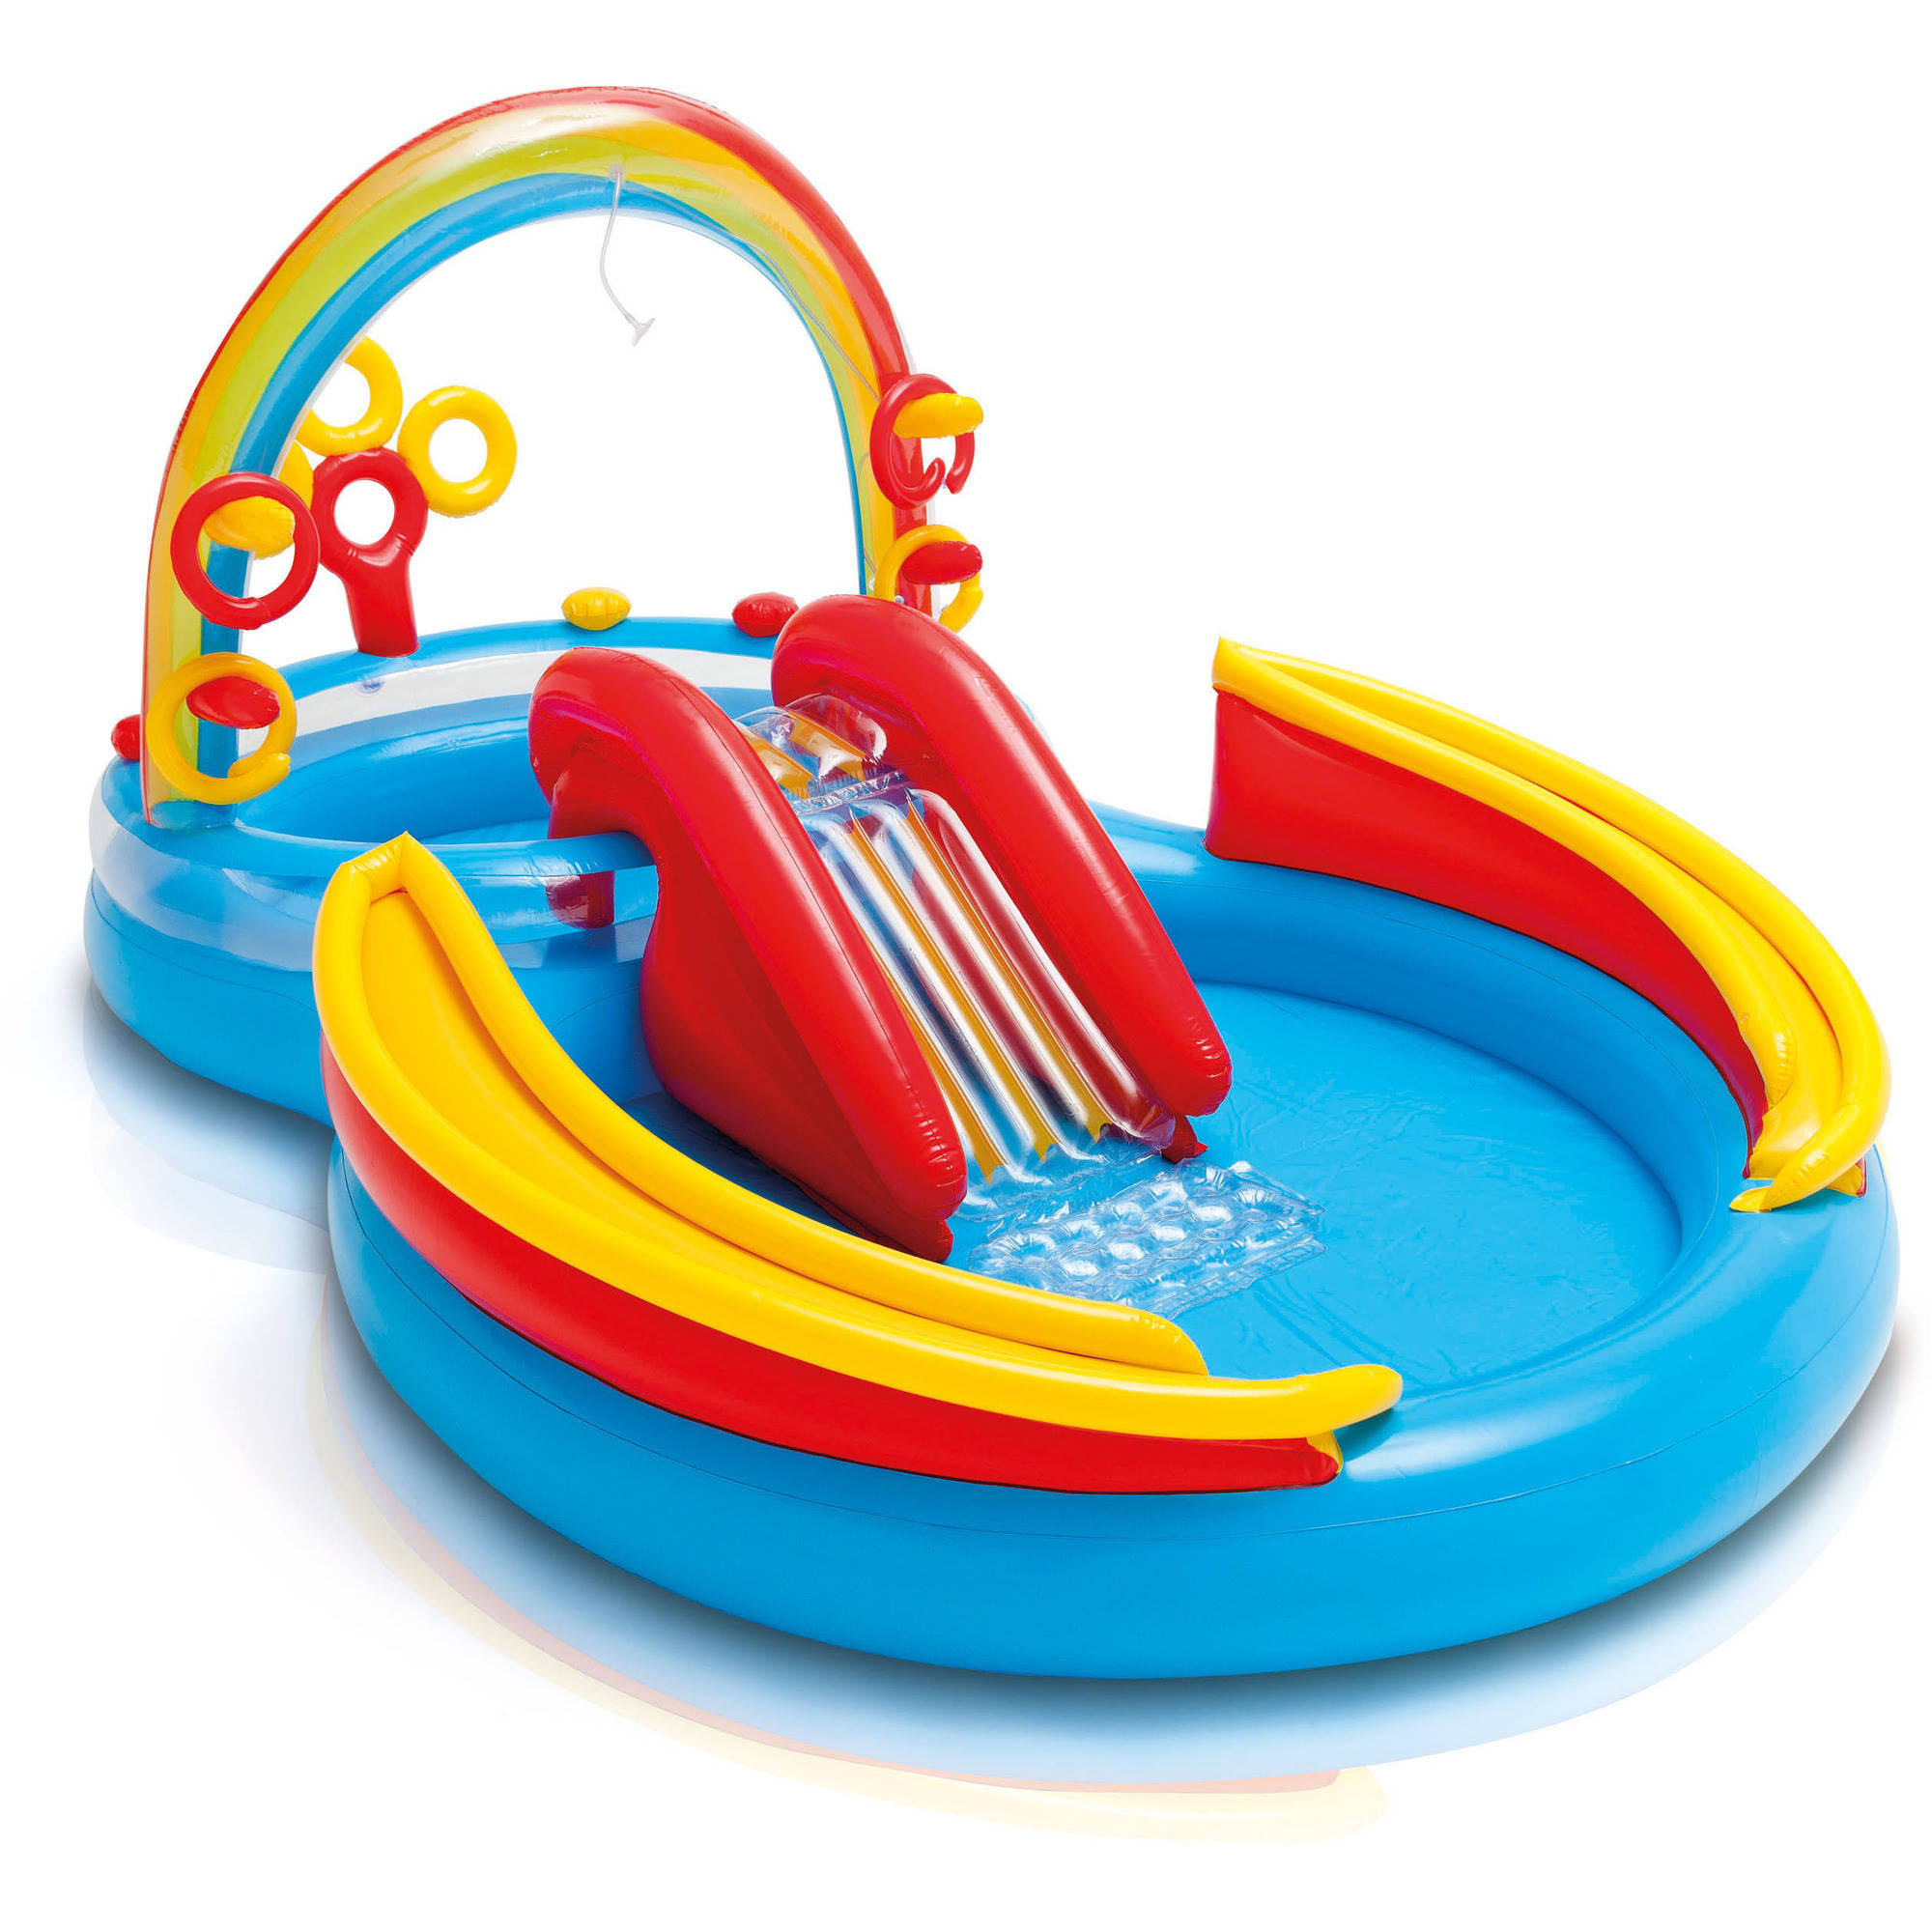 Kids Pools With Slides kiddie & inflatable pools - walmart